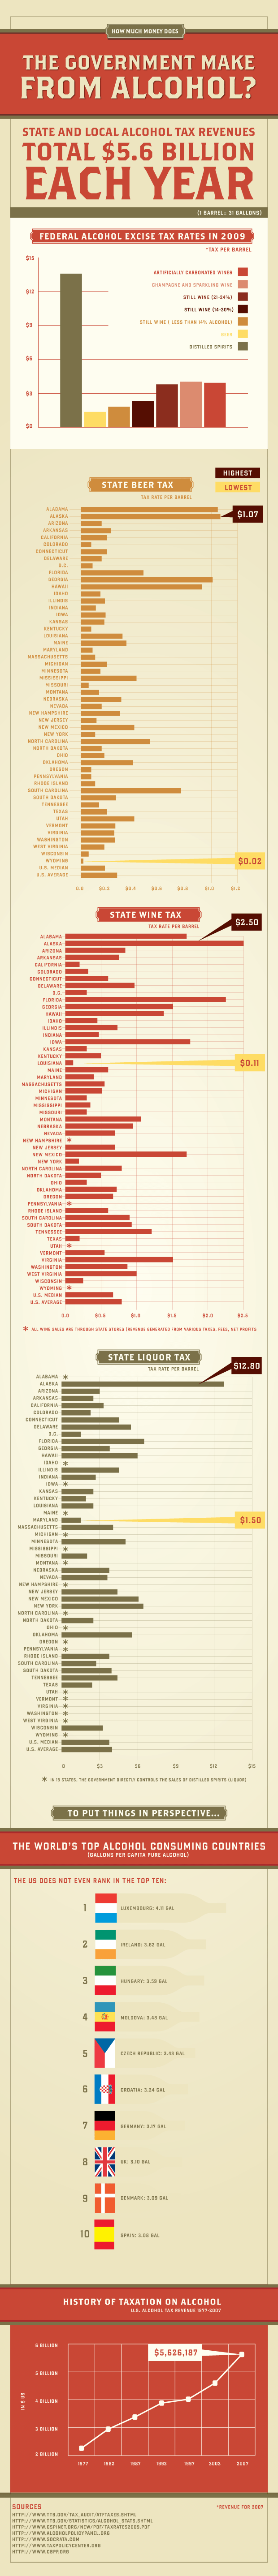 How Much Money Does The Gov't Make On Alcohol